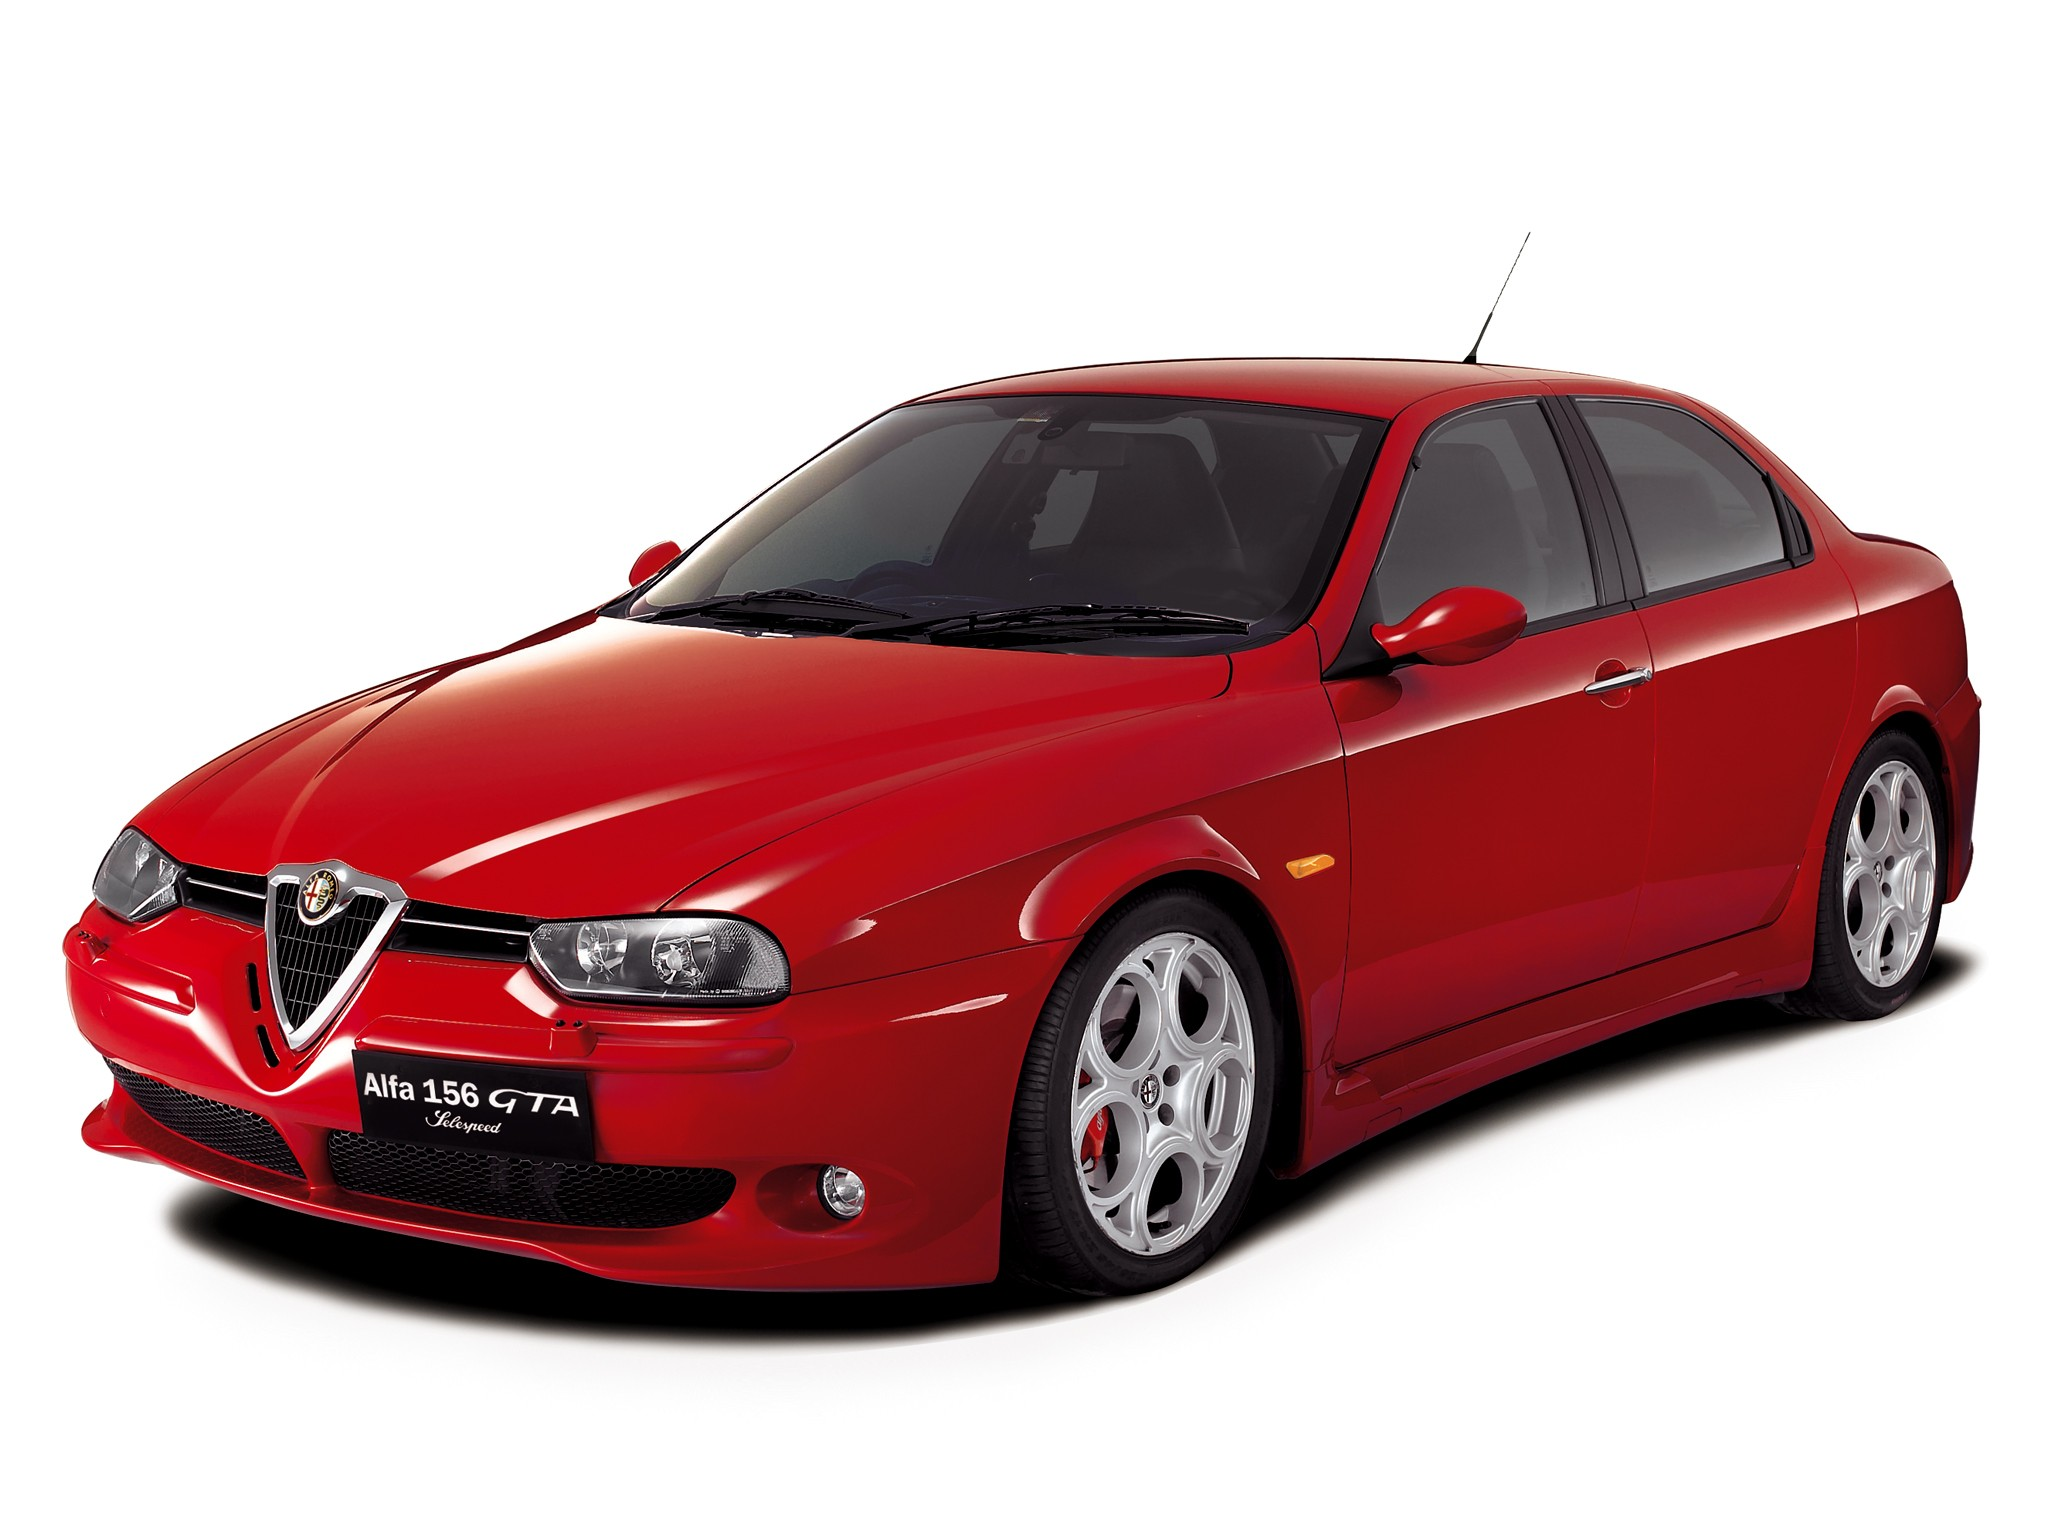 alfa romeo 156 gta 2001 2002 2003 2004 2005 autoevolution. Black Bedroom Furniture Sets. Home Design Ideas